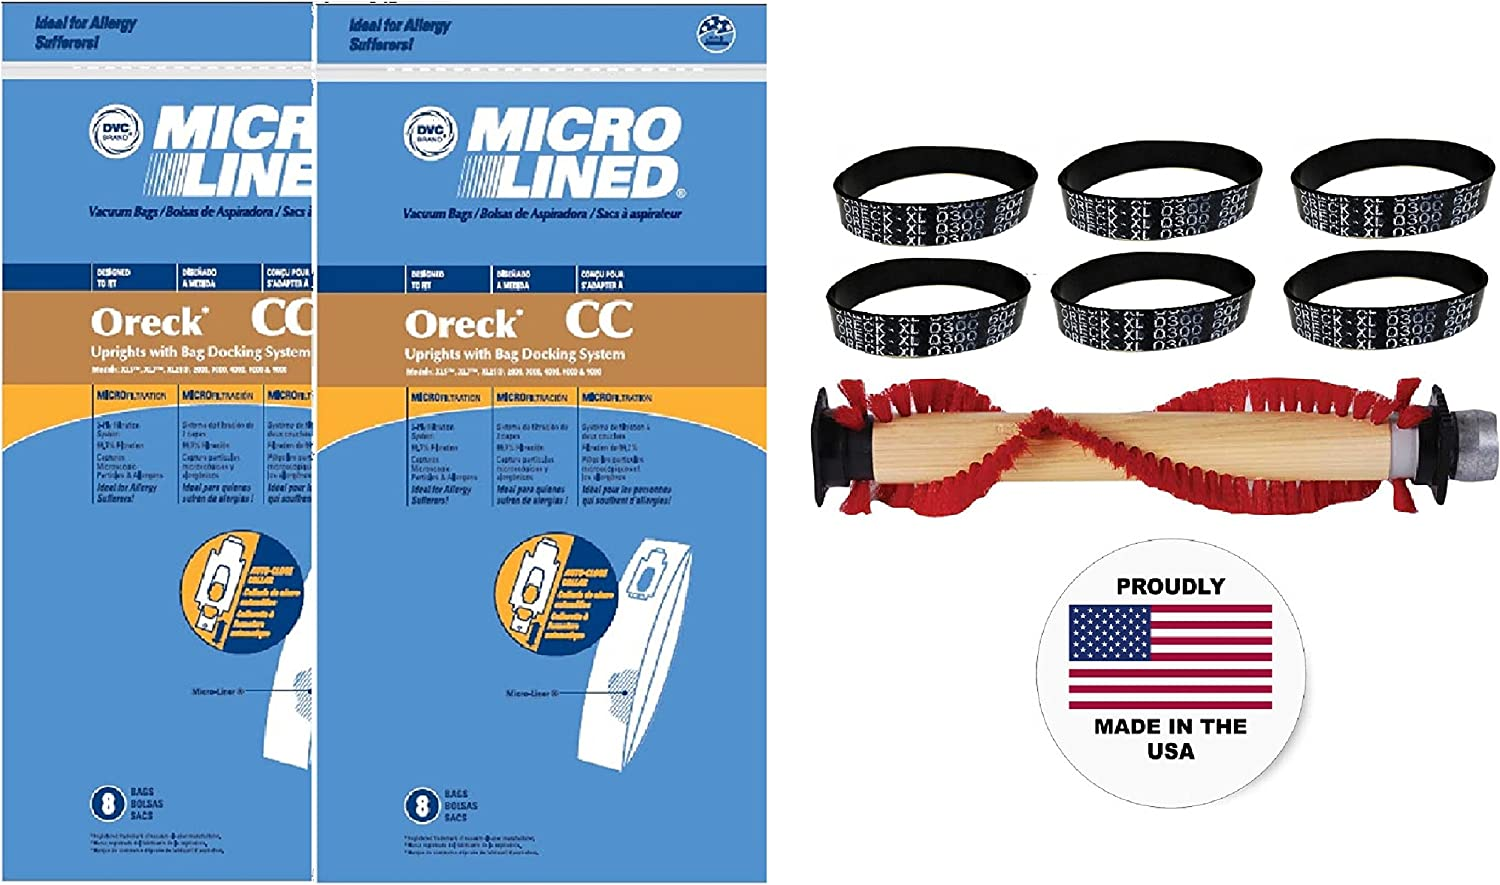 One Year Maintenance Supply Kit, Bags, Belts and Roller Brush, for all XL Uprights. Proudly Made In USA.